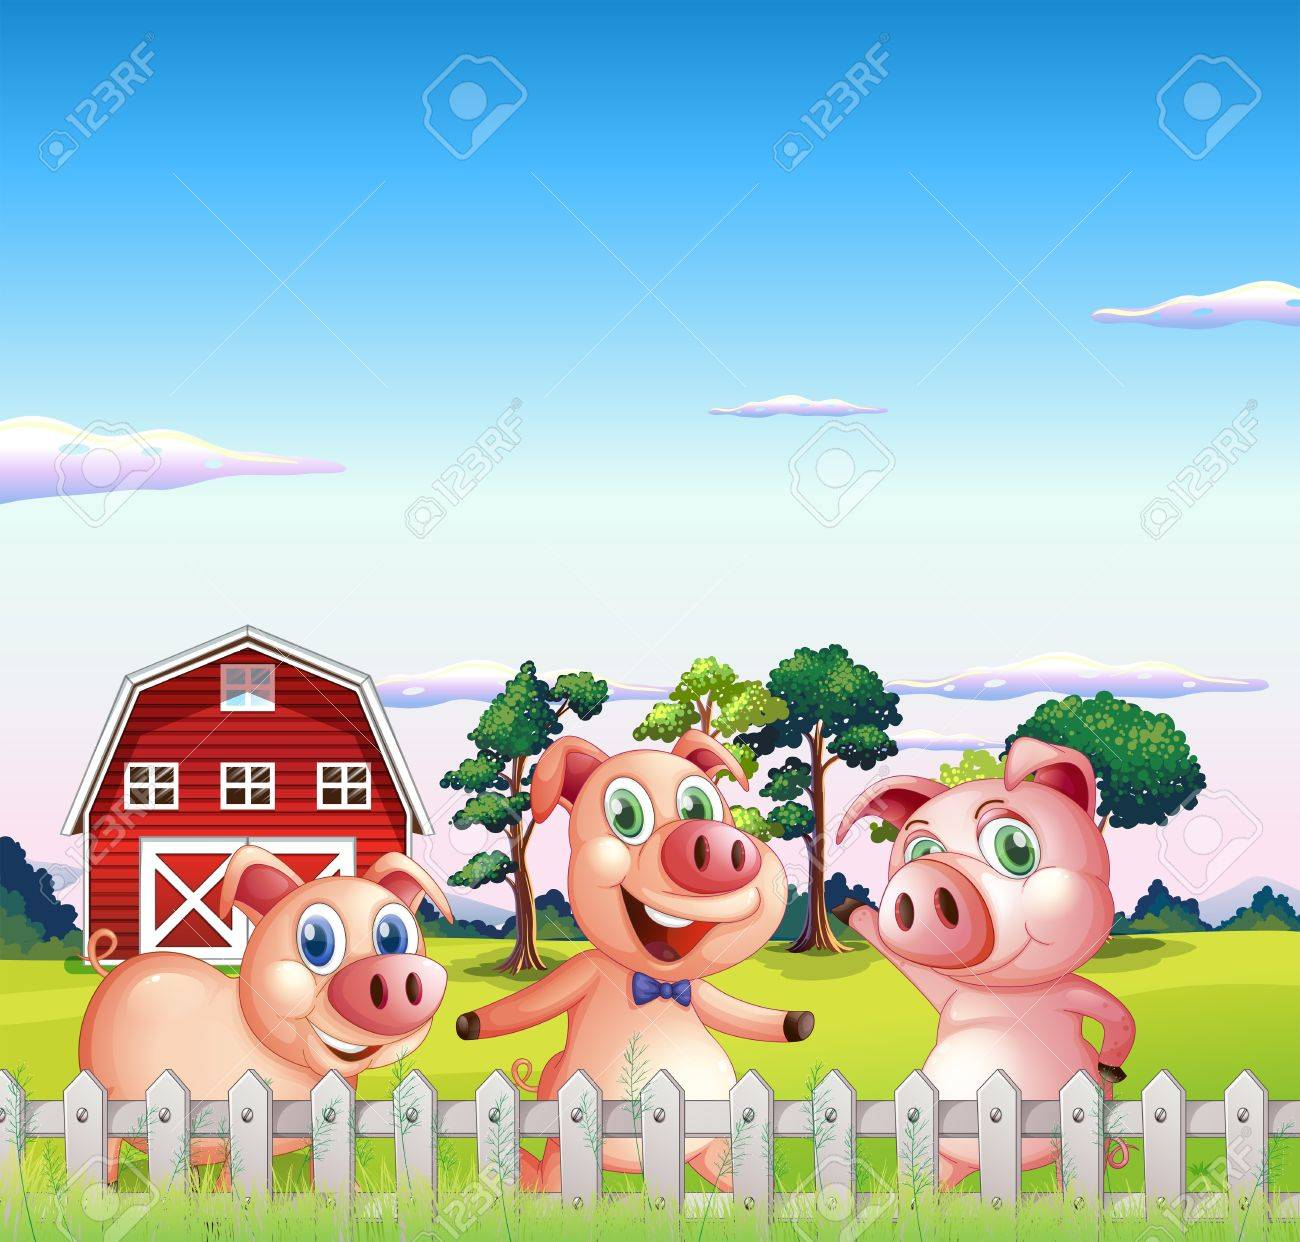 Illustration of the three pigs dancing inside the fence Stock Vector - 20140241